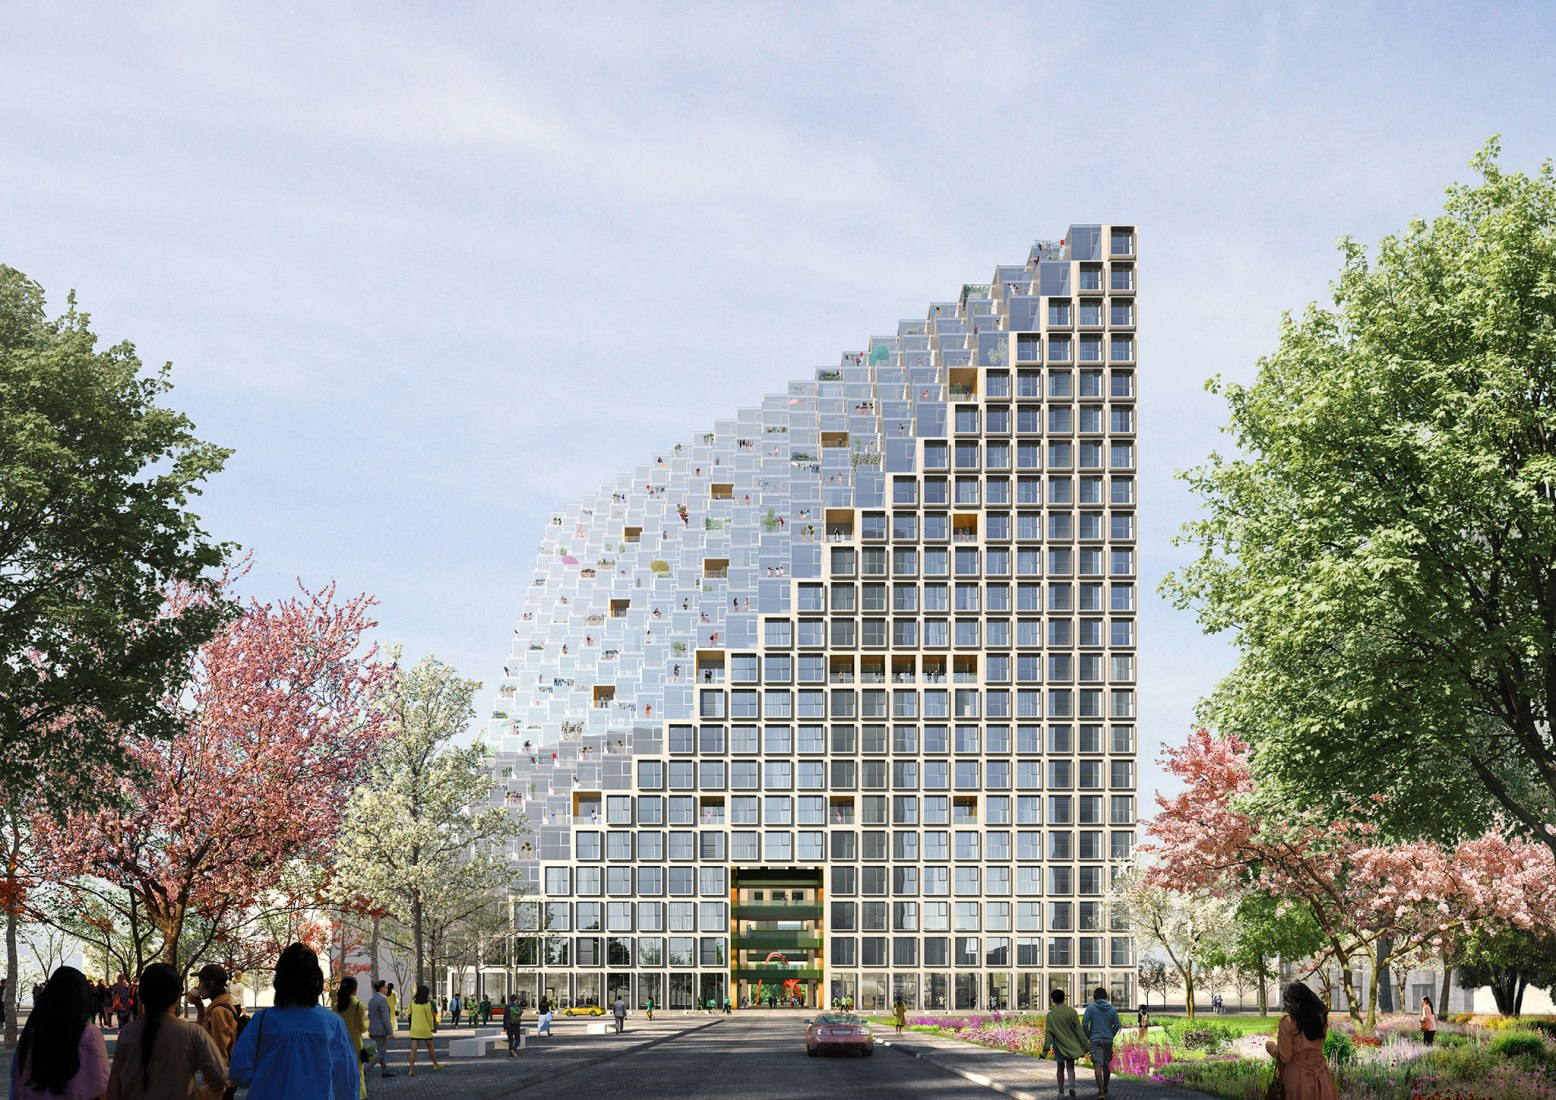 Outside rendering. Xinhu Hangzhou Prism Breaks Ground by OMA. Image by Bloomimages, Courtesy of OMA